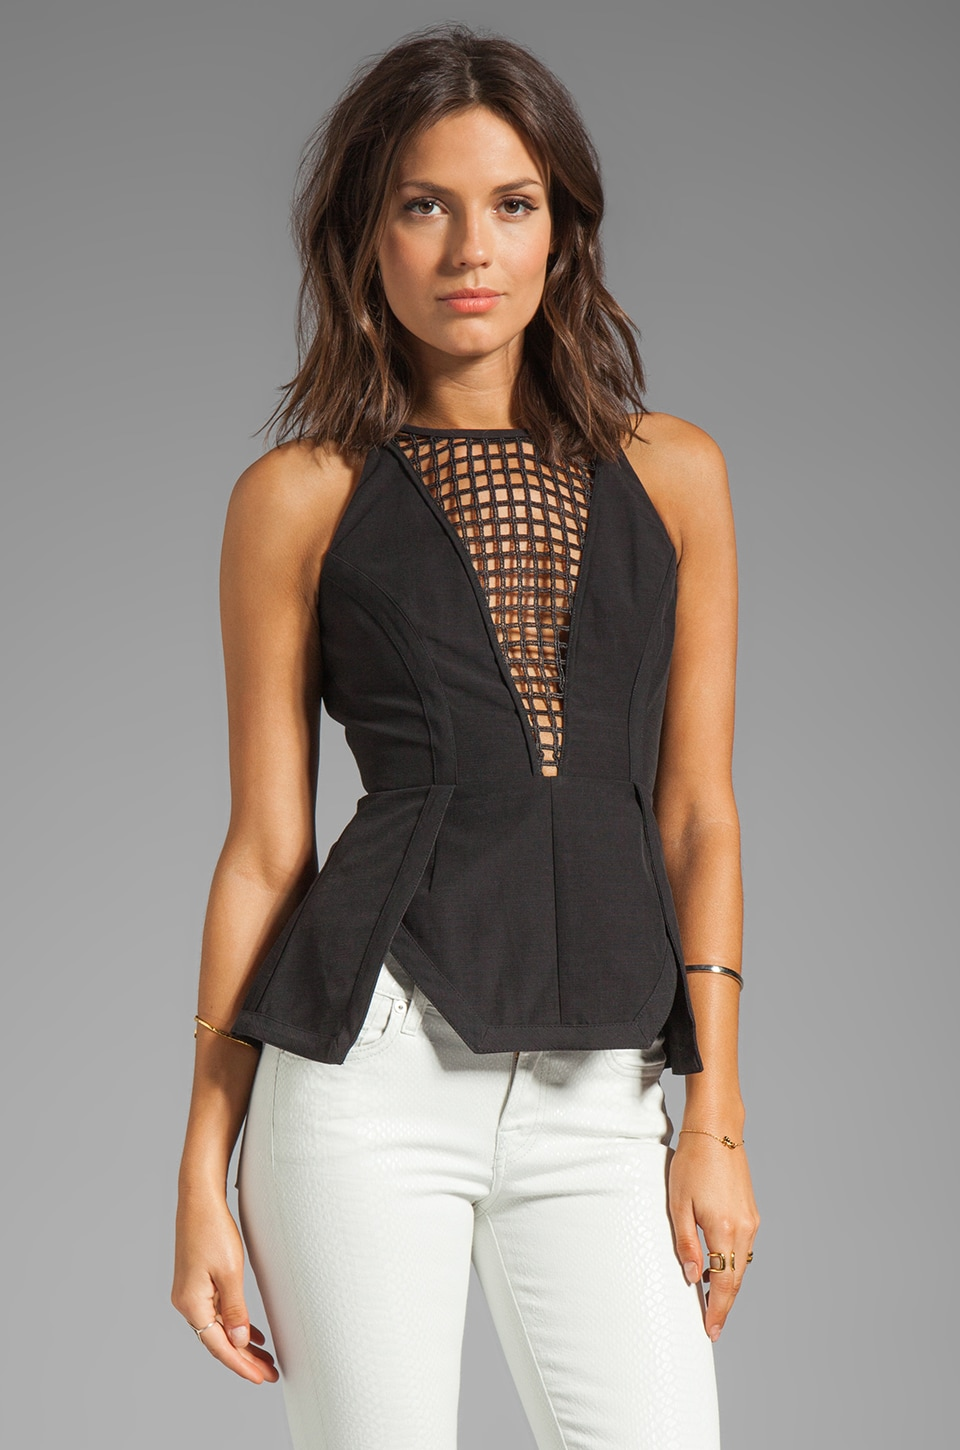 Finders Keepers By the Way Top in Black